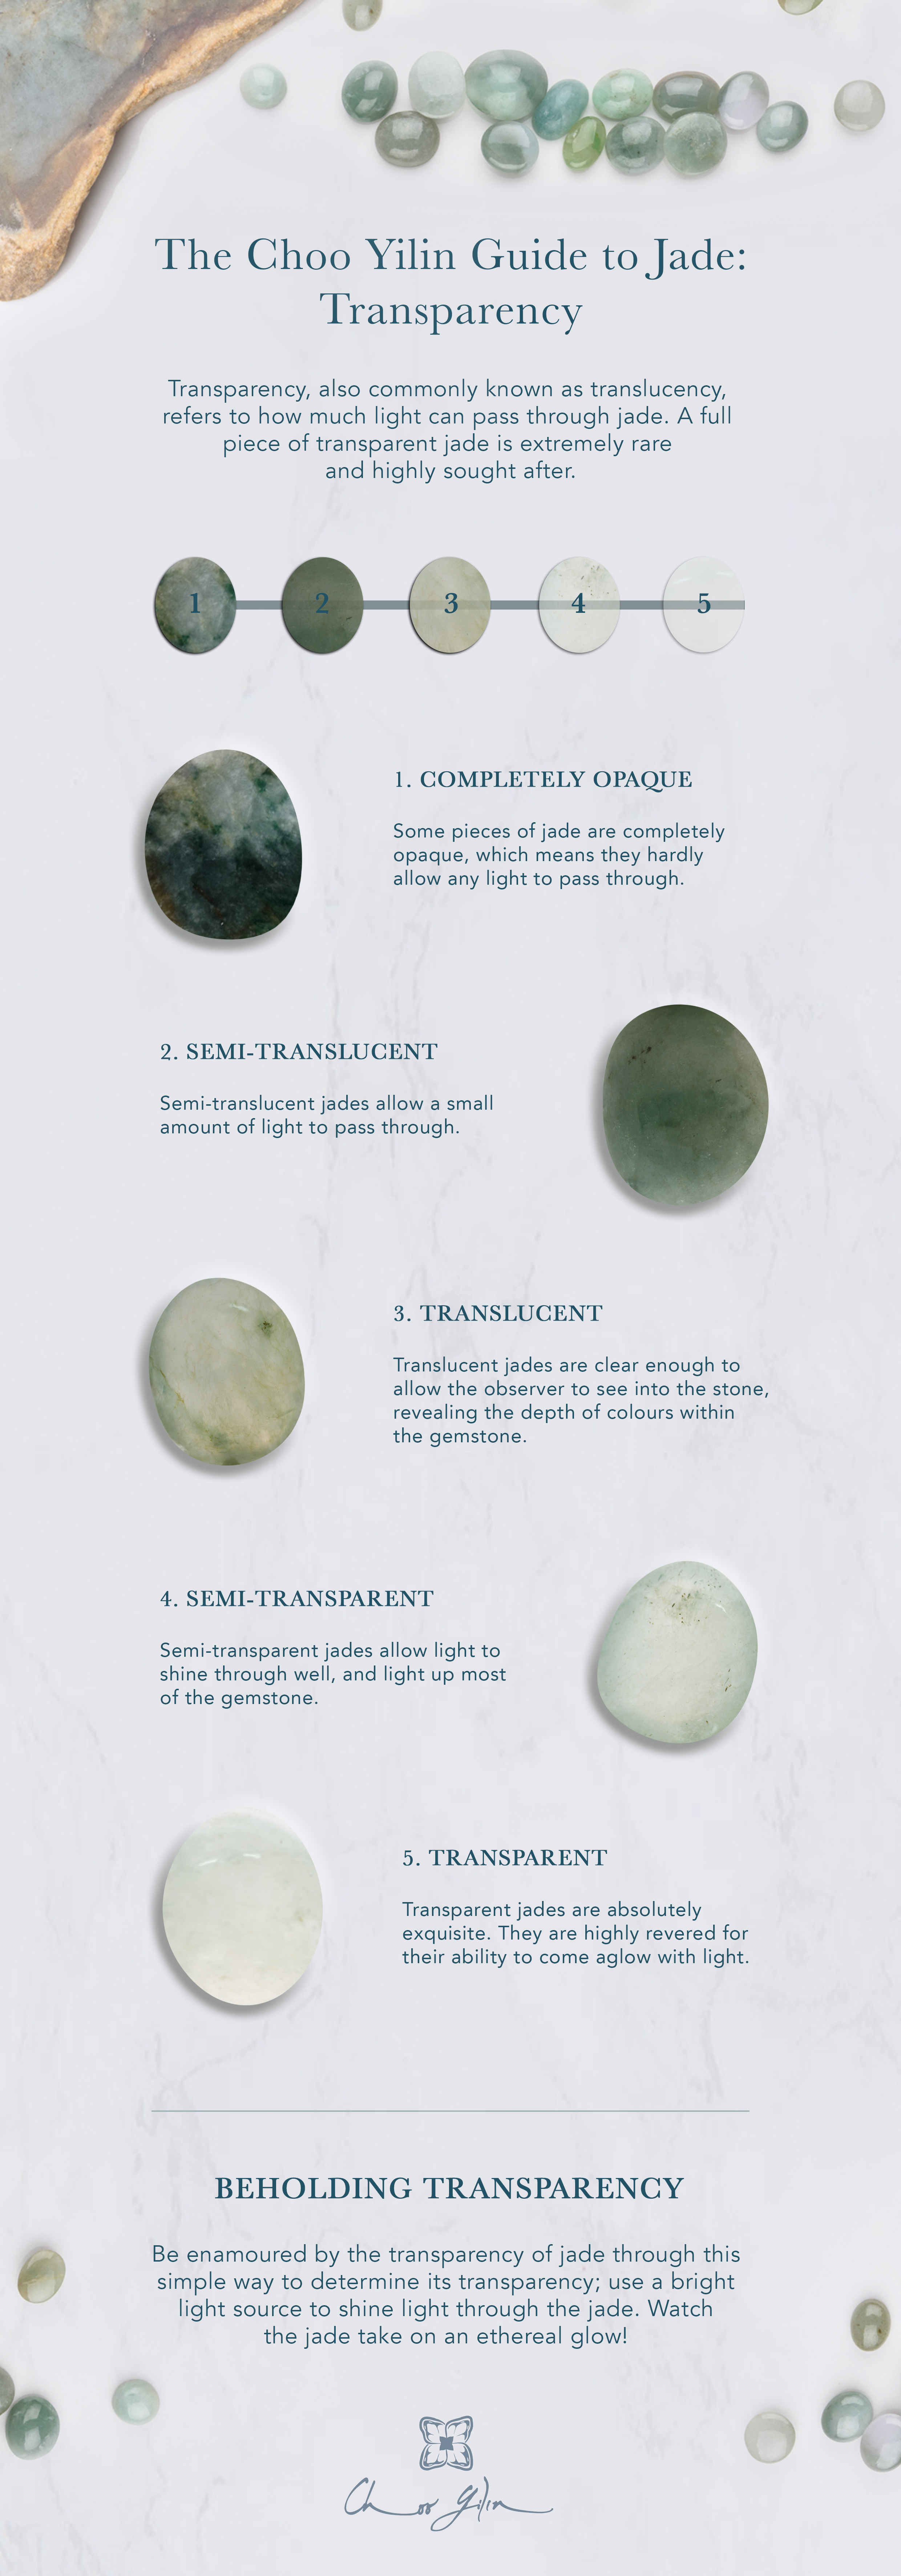 The Choo Yilin Guide to Jade:Transparency Transparency, also commonly known as translucency, refers to how much light can pass through jade. A full piece of transparent jade is extremely rare and highly sought after.1. COMPLETELY OPAQUE Some pieces of jade are completely opaque, which means they hardly allow any light to pass through.2. SEMI-TRANSLUCENT Semi-translucent jades allow a small amount of light to pass through.3. TRANSLUCENT Translucent jades are clear enough to allow the observer to see into the stone, revealing the depth of colours within the gemstone.4. SEMI-TRANSPARENT Semi-transparent jades allow light to shine through well, and light up most of the gemstone.5. TRANSPARENT Transparent jades are absolutely exquisite. They are highly revered for their ability to come aglow with light.BEHOLDING TRANSPARENCY Be enamoured by the transparency of jade through this simple way to determine its transparency; use a bright light source to shine light through the jade. Watch the jade take on an ethereal glow!